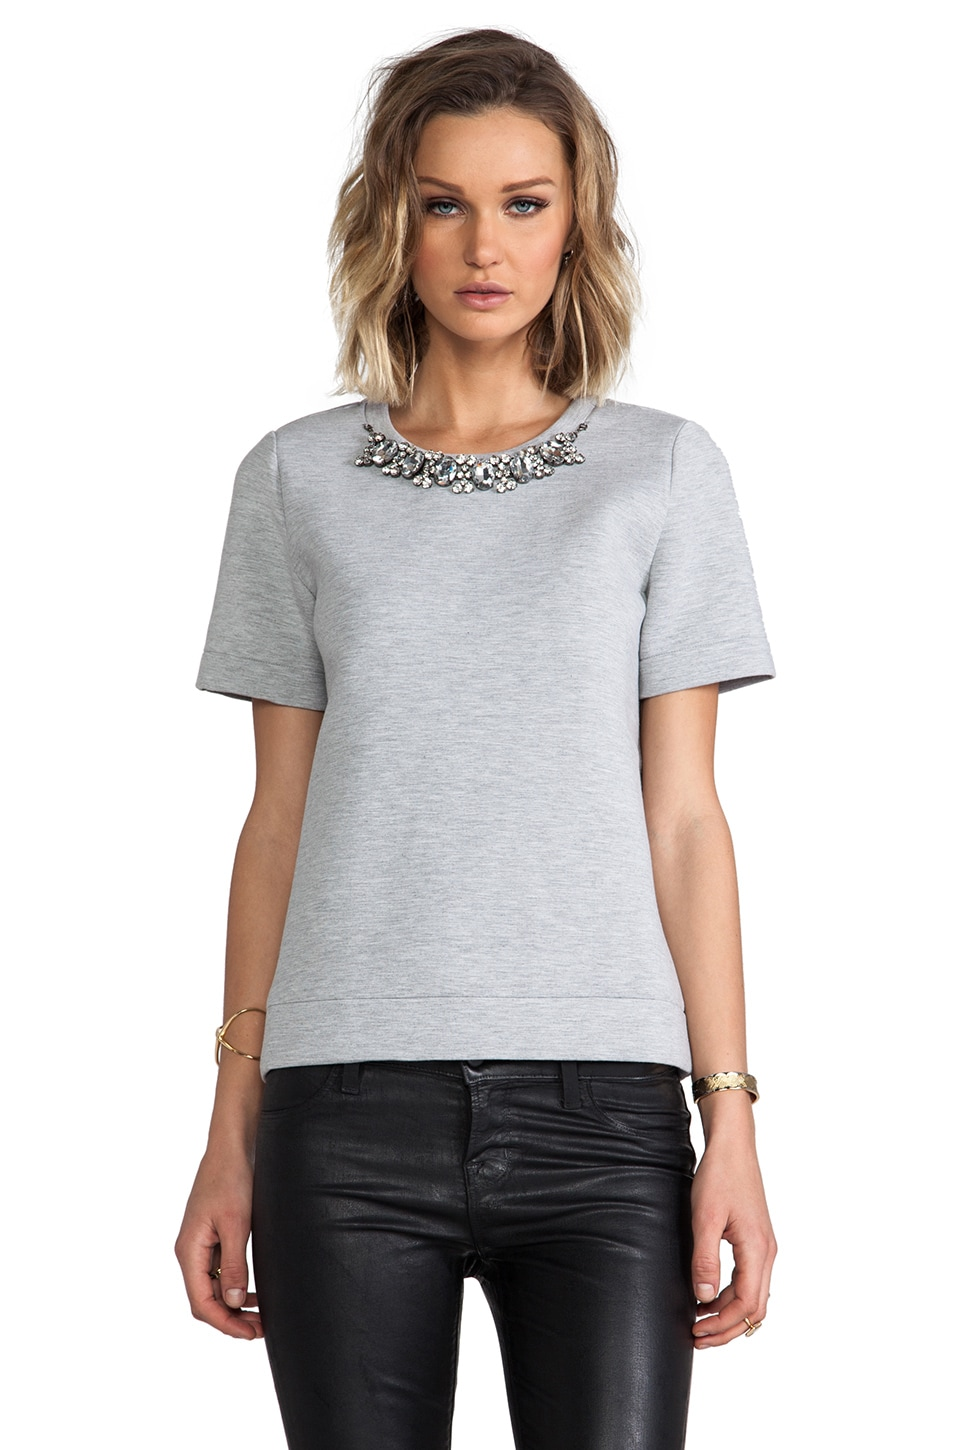 Funktional Discovery Top in Grey